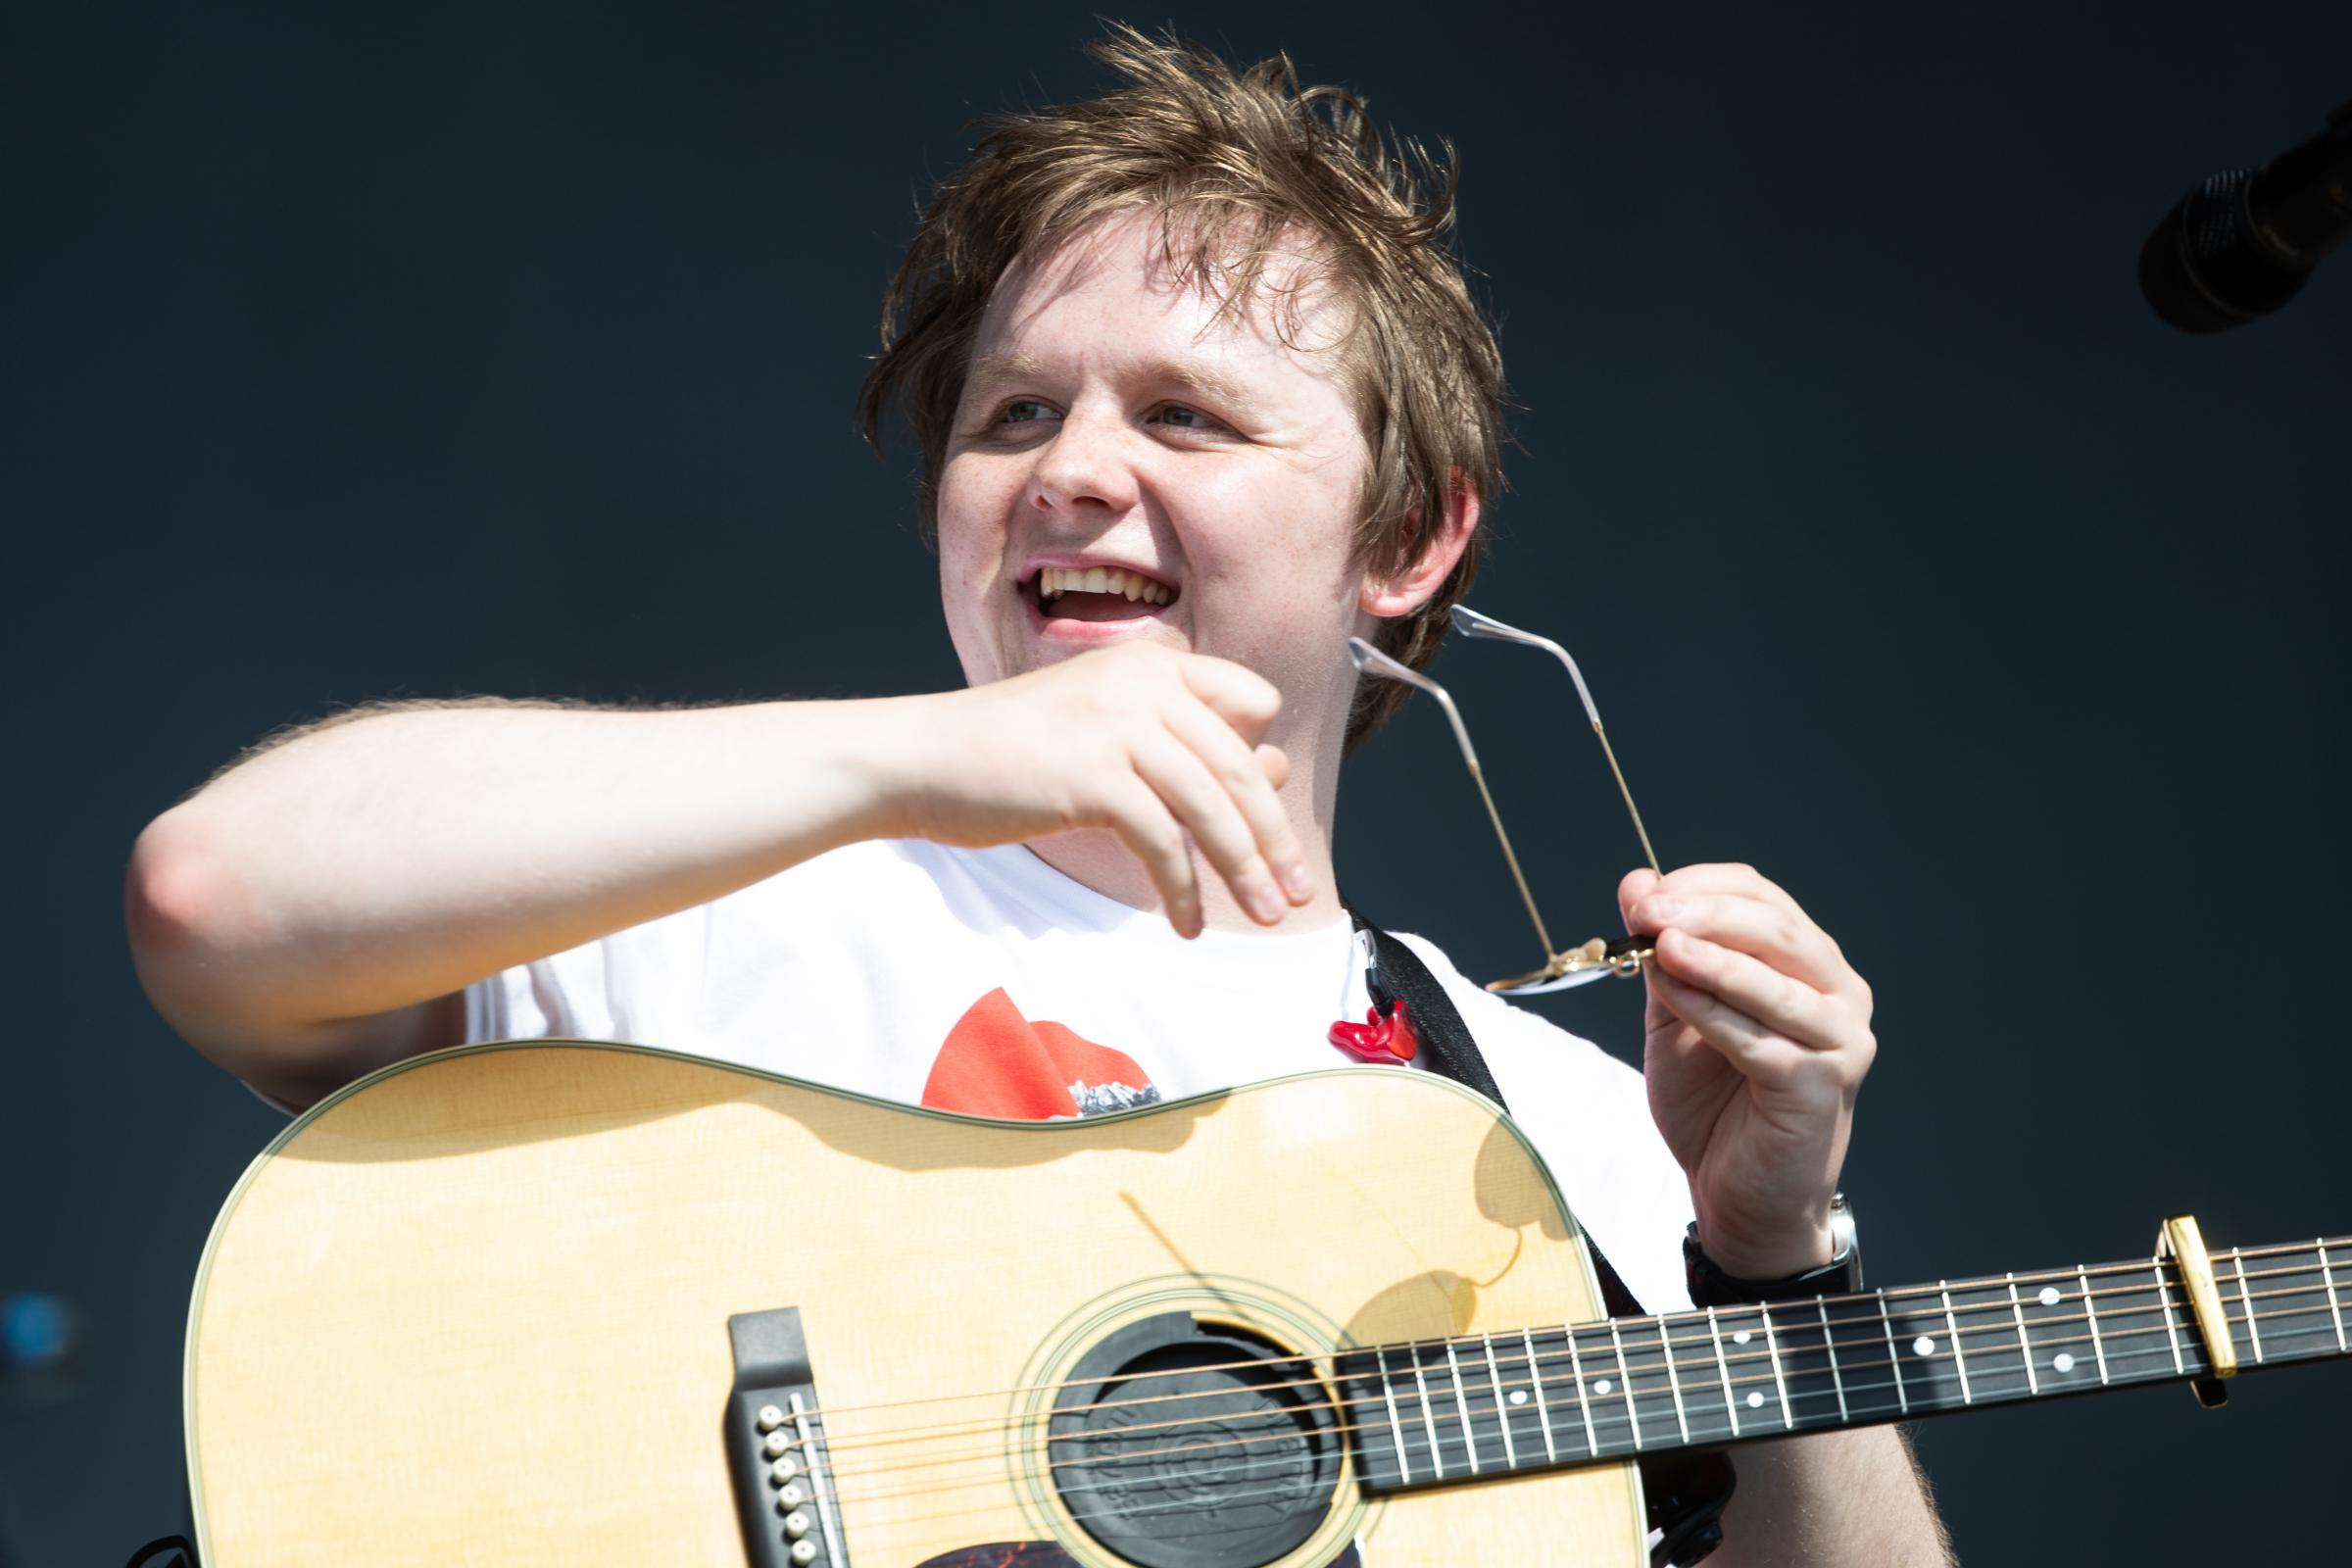 Lewis Capaldi: Documentary charting rise to fame set to be released